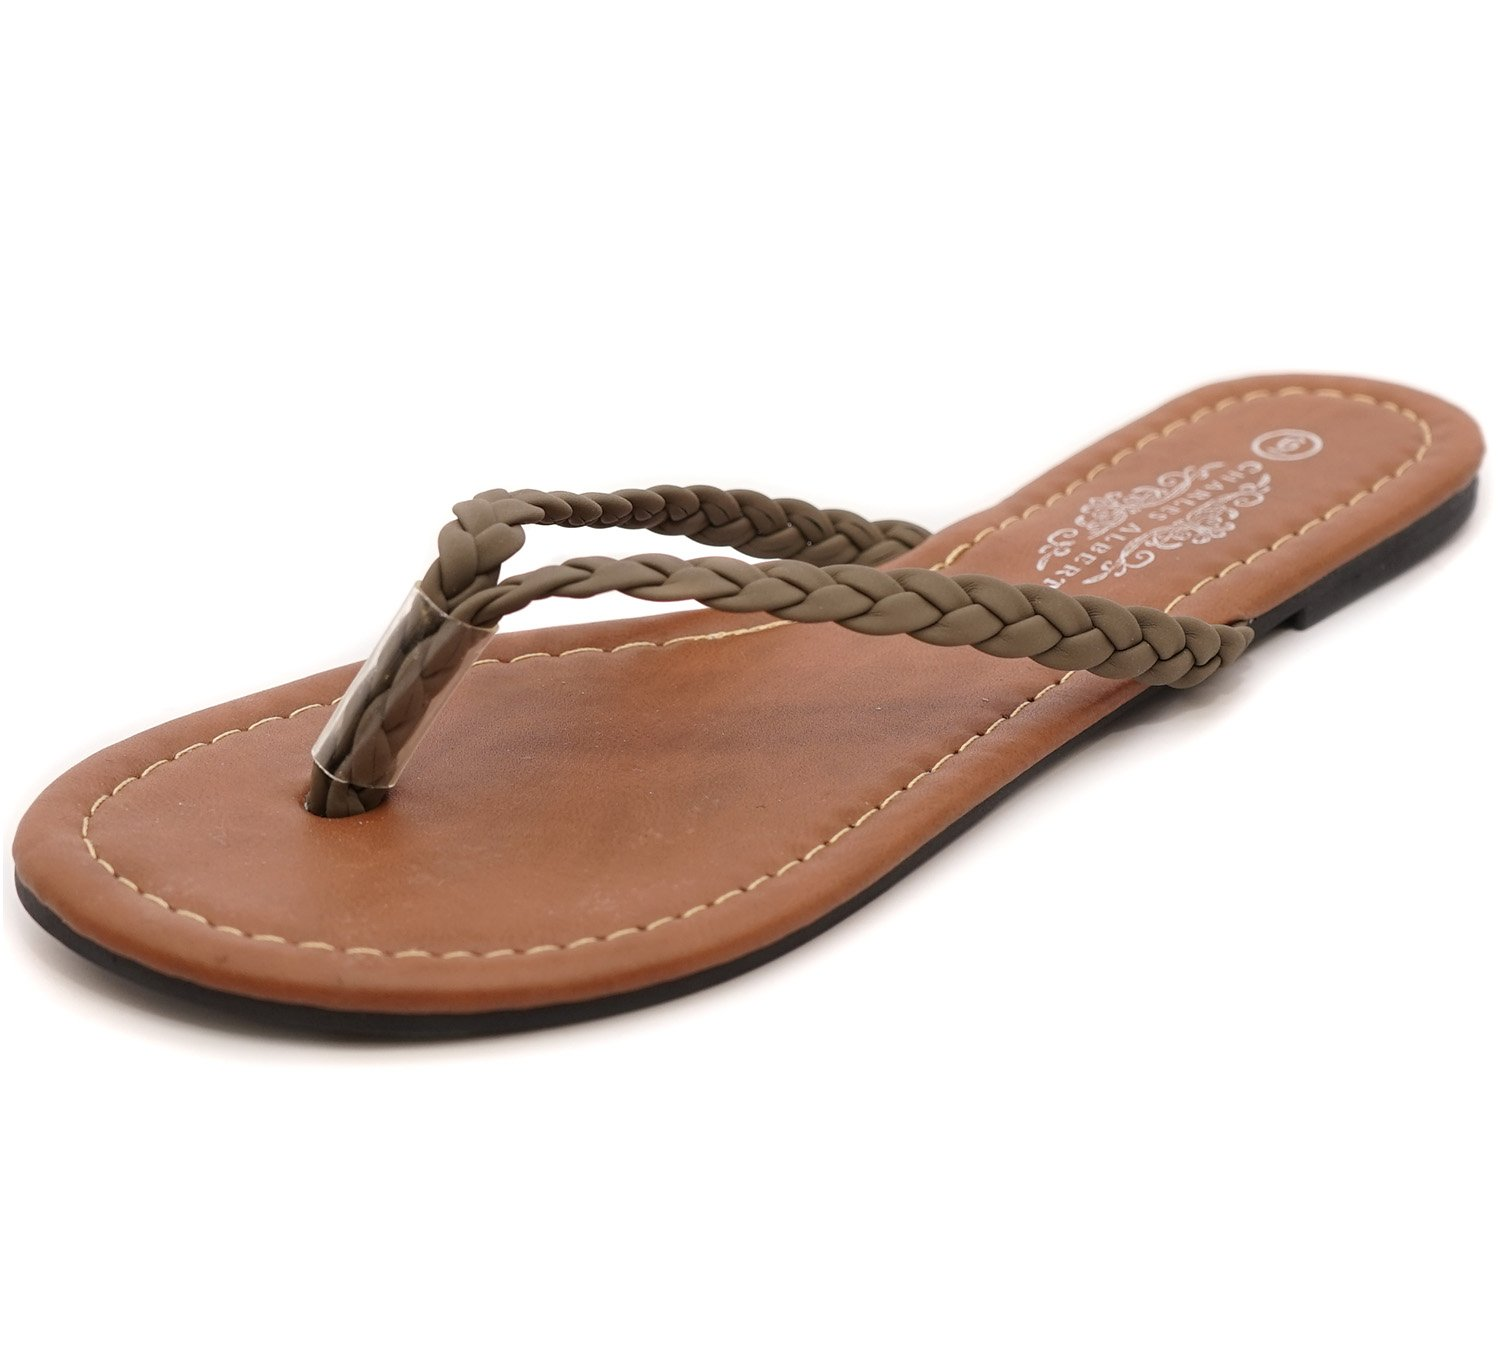 Charles Albert Women's Easy Braided Thong Flip Flop Sandal